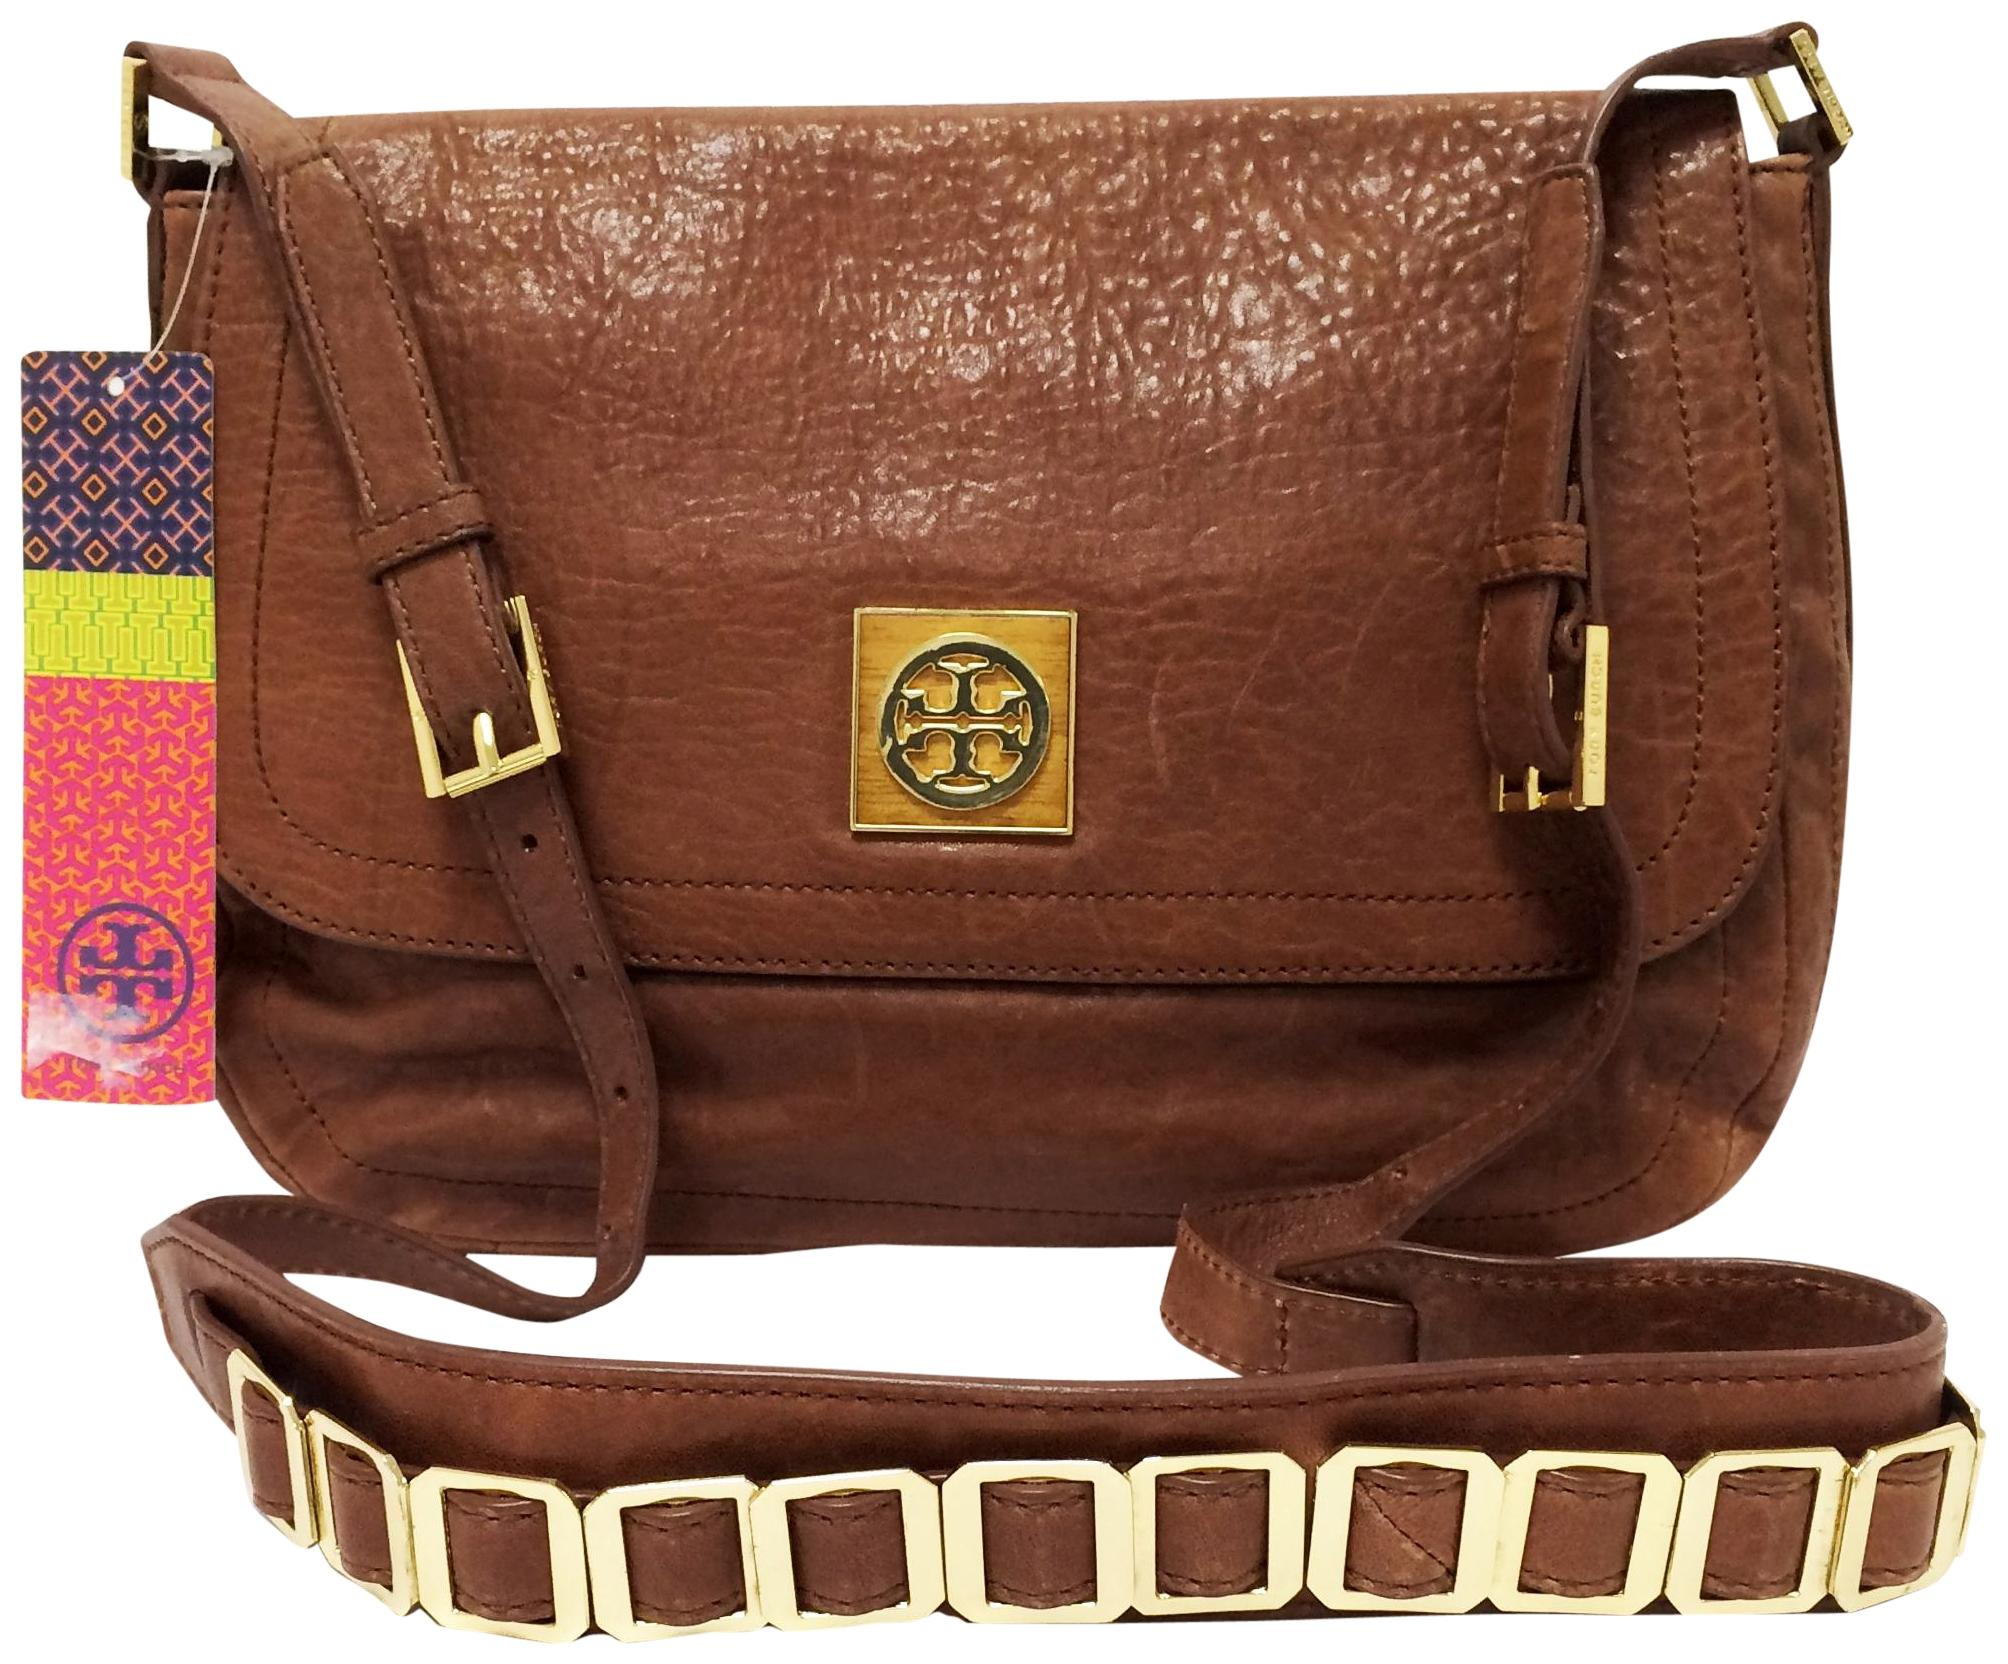 f53884c9f1883 ... clearance tory burch leather small coffee messenger bag 0eb94 226e2